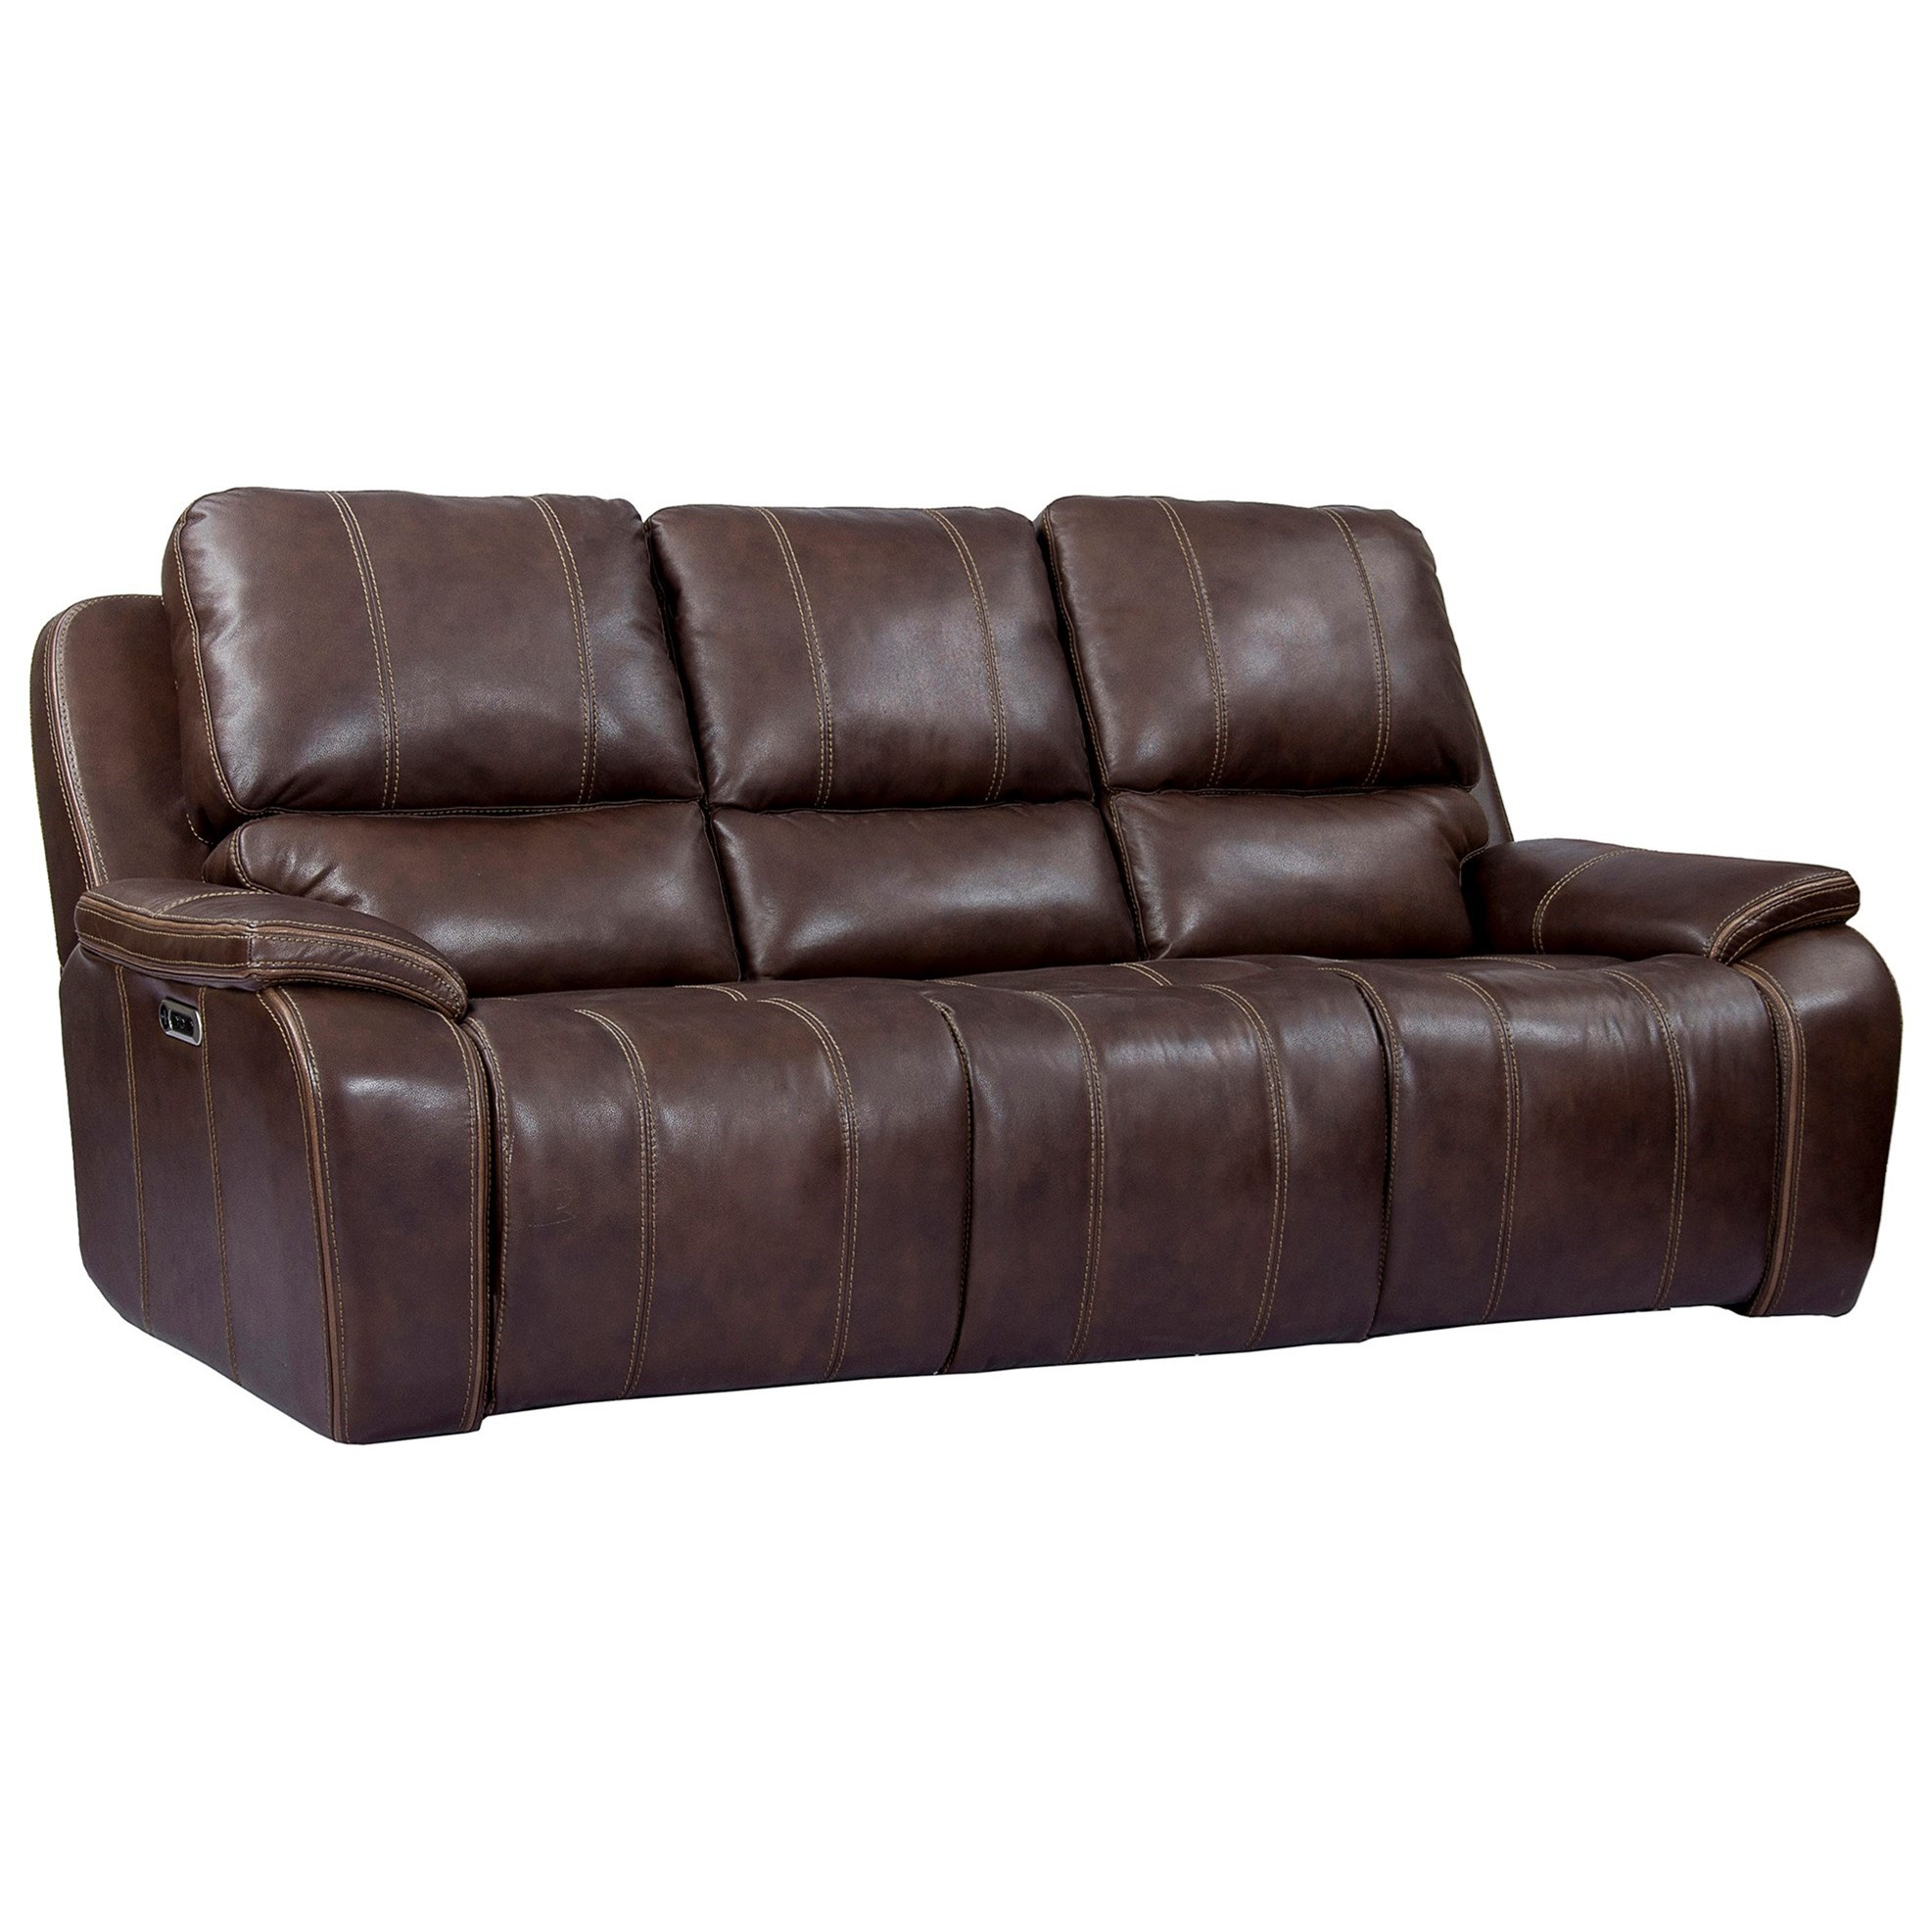 Leather Match Power Recliner Sofa